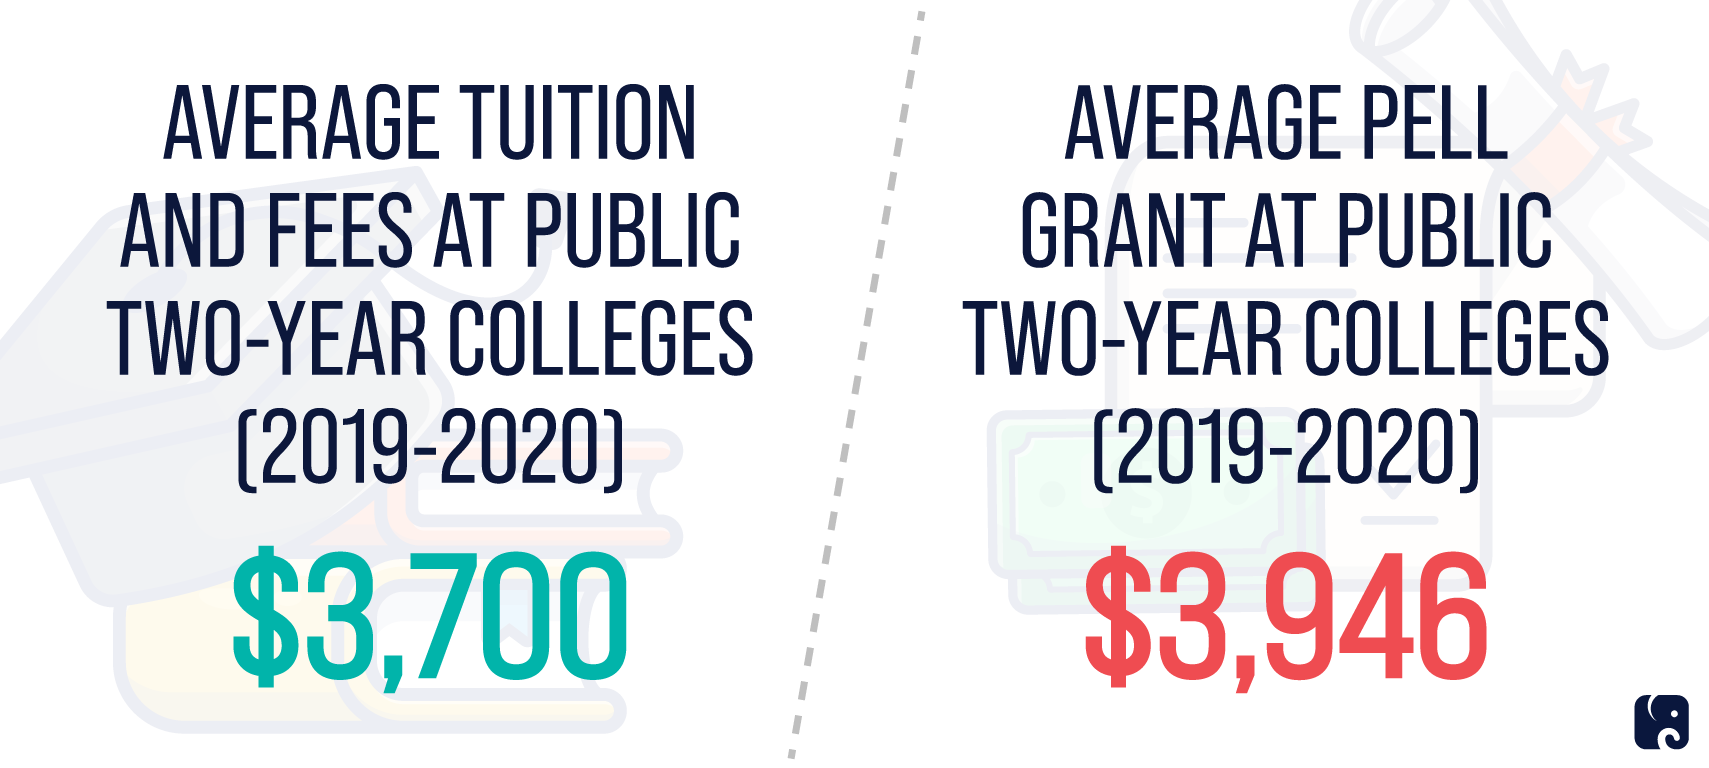 With Pell Grant Community College is Already Free